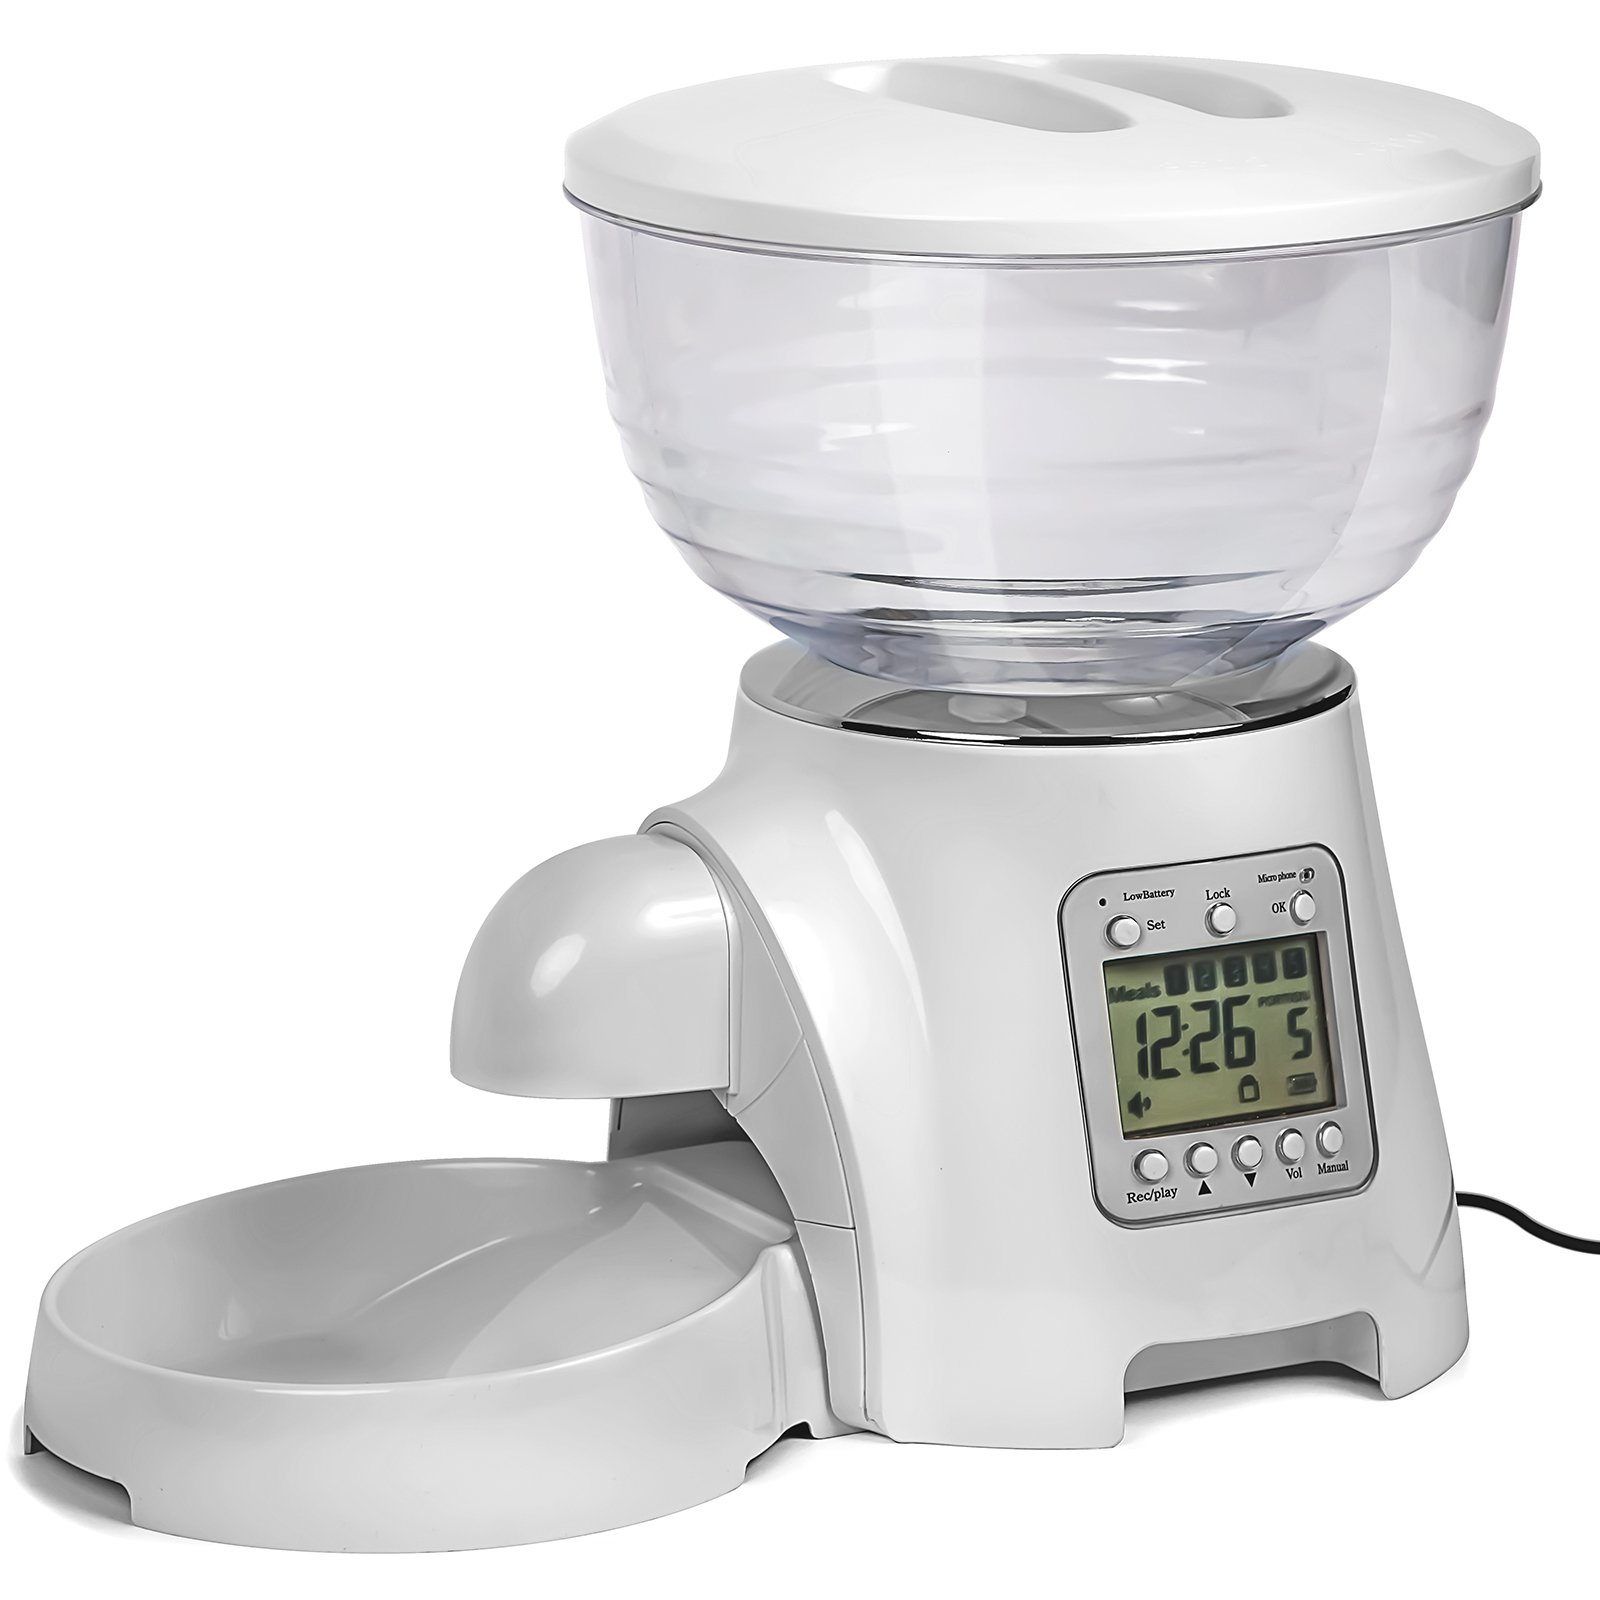 Paws & Pals Automatic Electronic Timer Programmable Dog Feeder for Large to Small Dogs - White